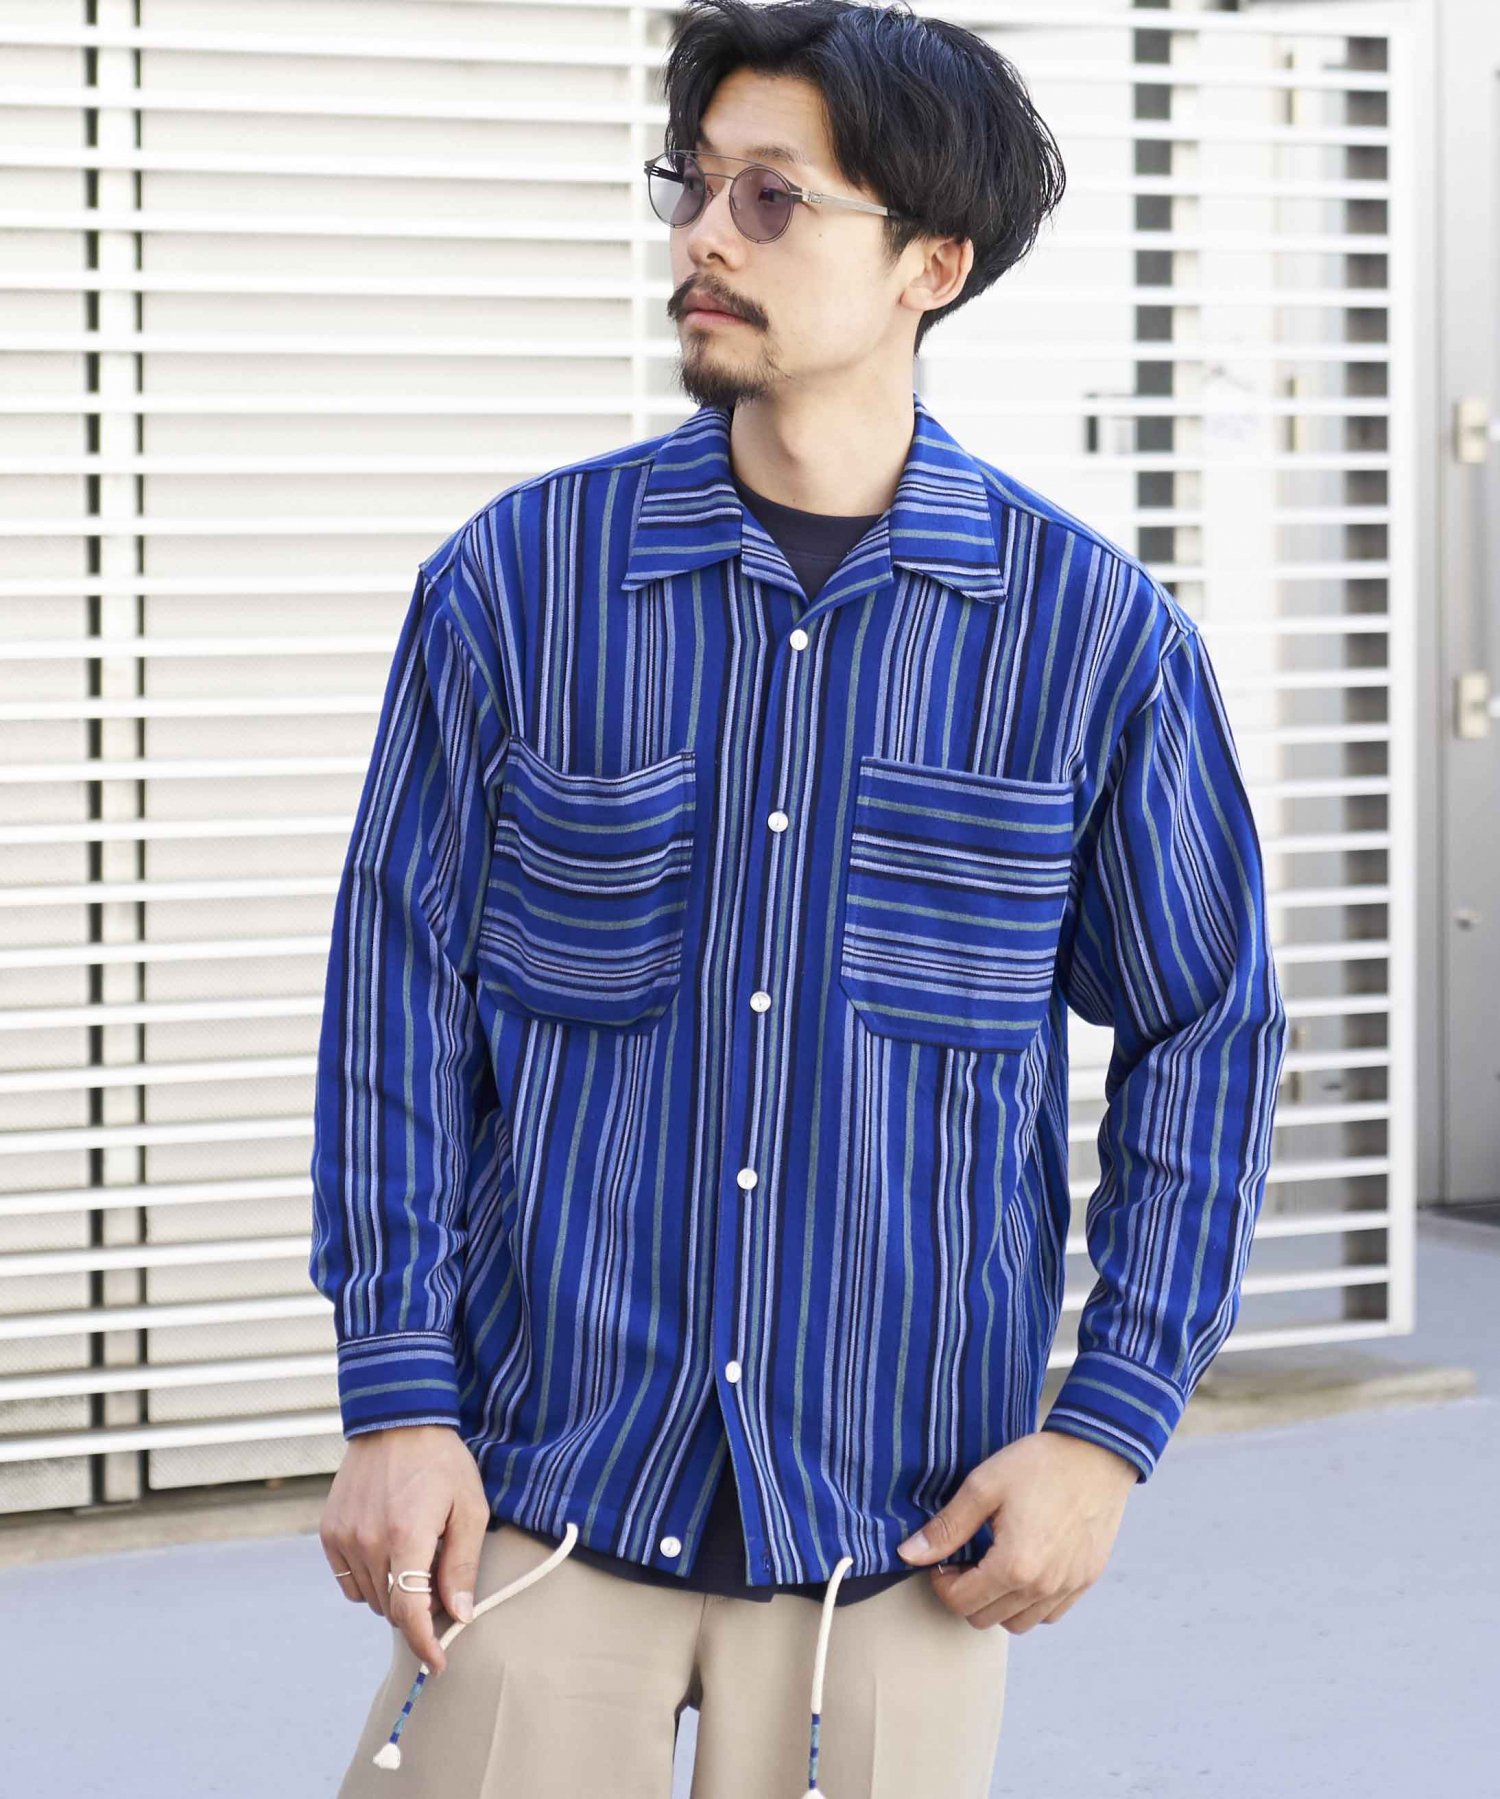 <img class='new_mark_img1' src='https://img.shop-pro.jp/img/new/icons15.gif' style='border:none;display:inline;margin:0px;padding:0px;width:auto;' />【wakami】OPEN COLLAR L/S SHIRTS NVY